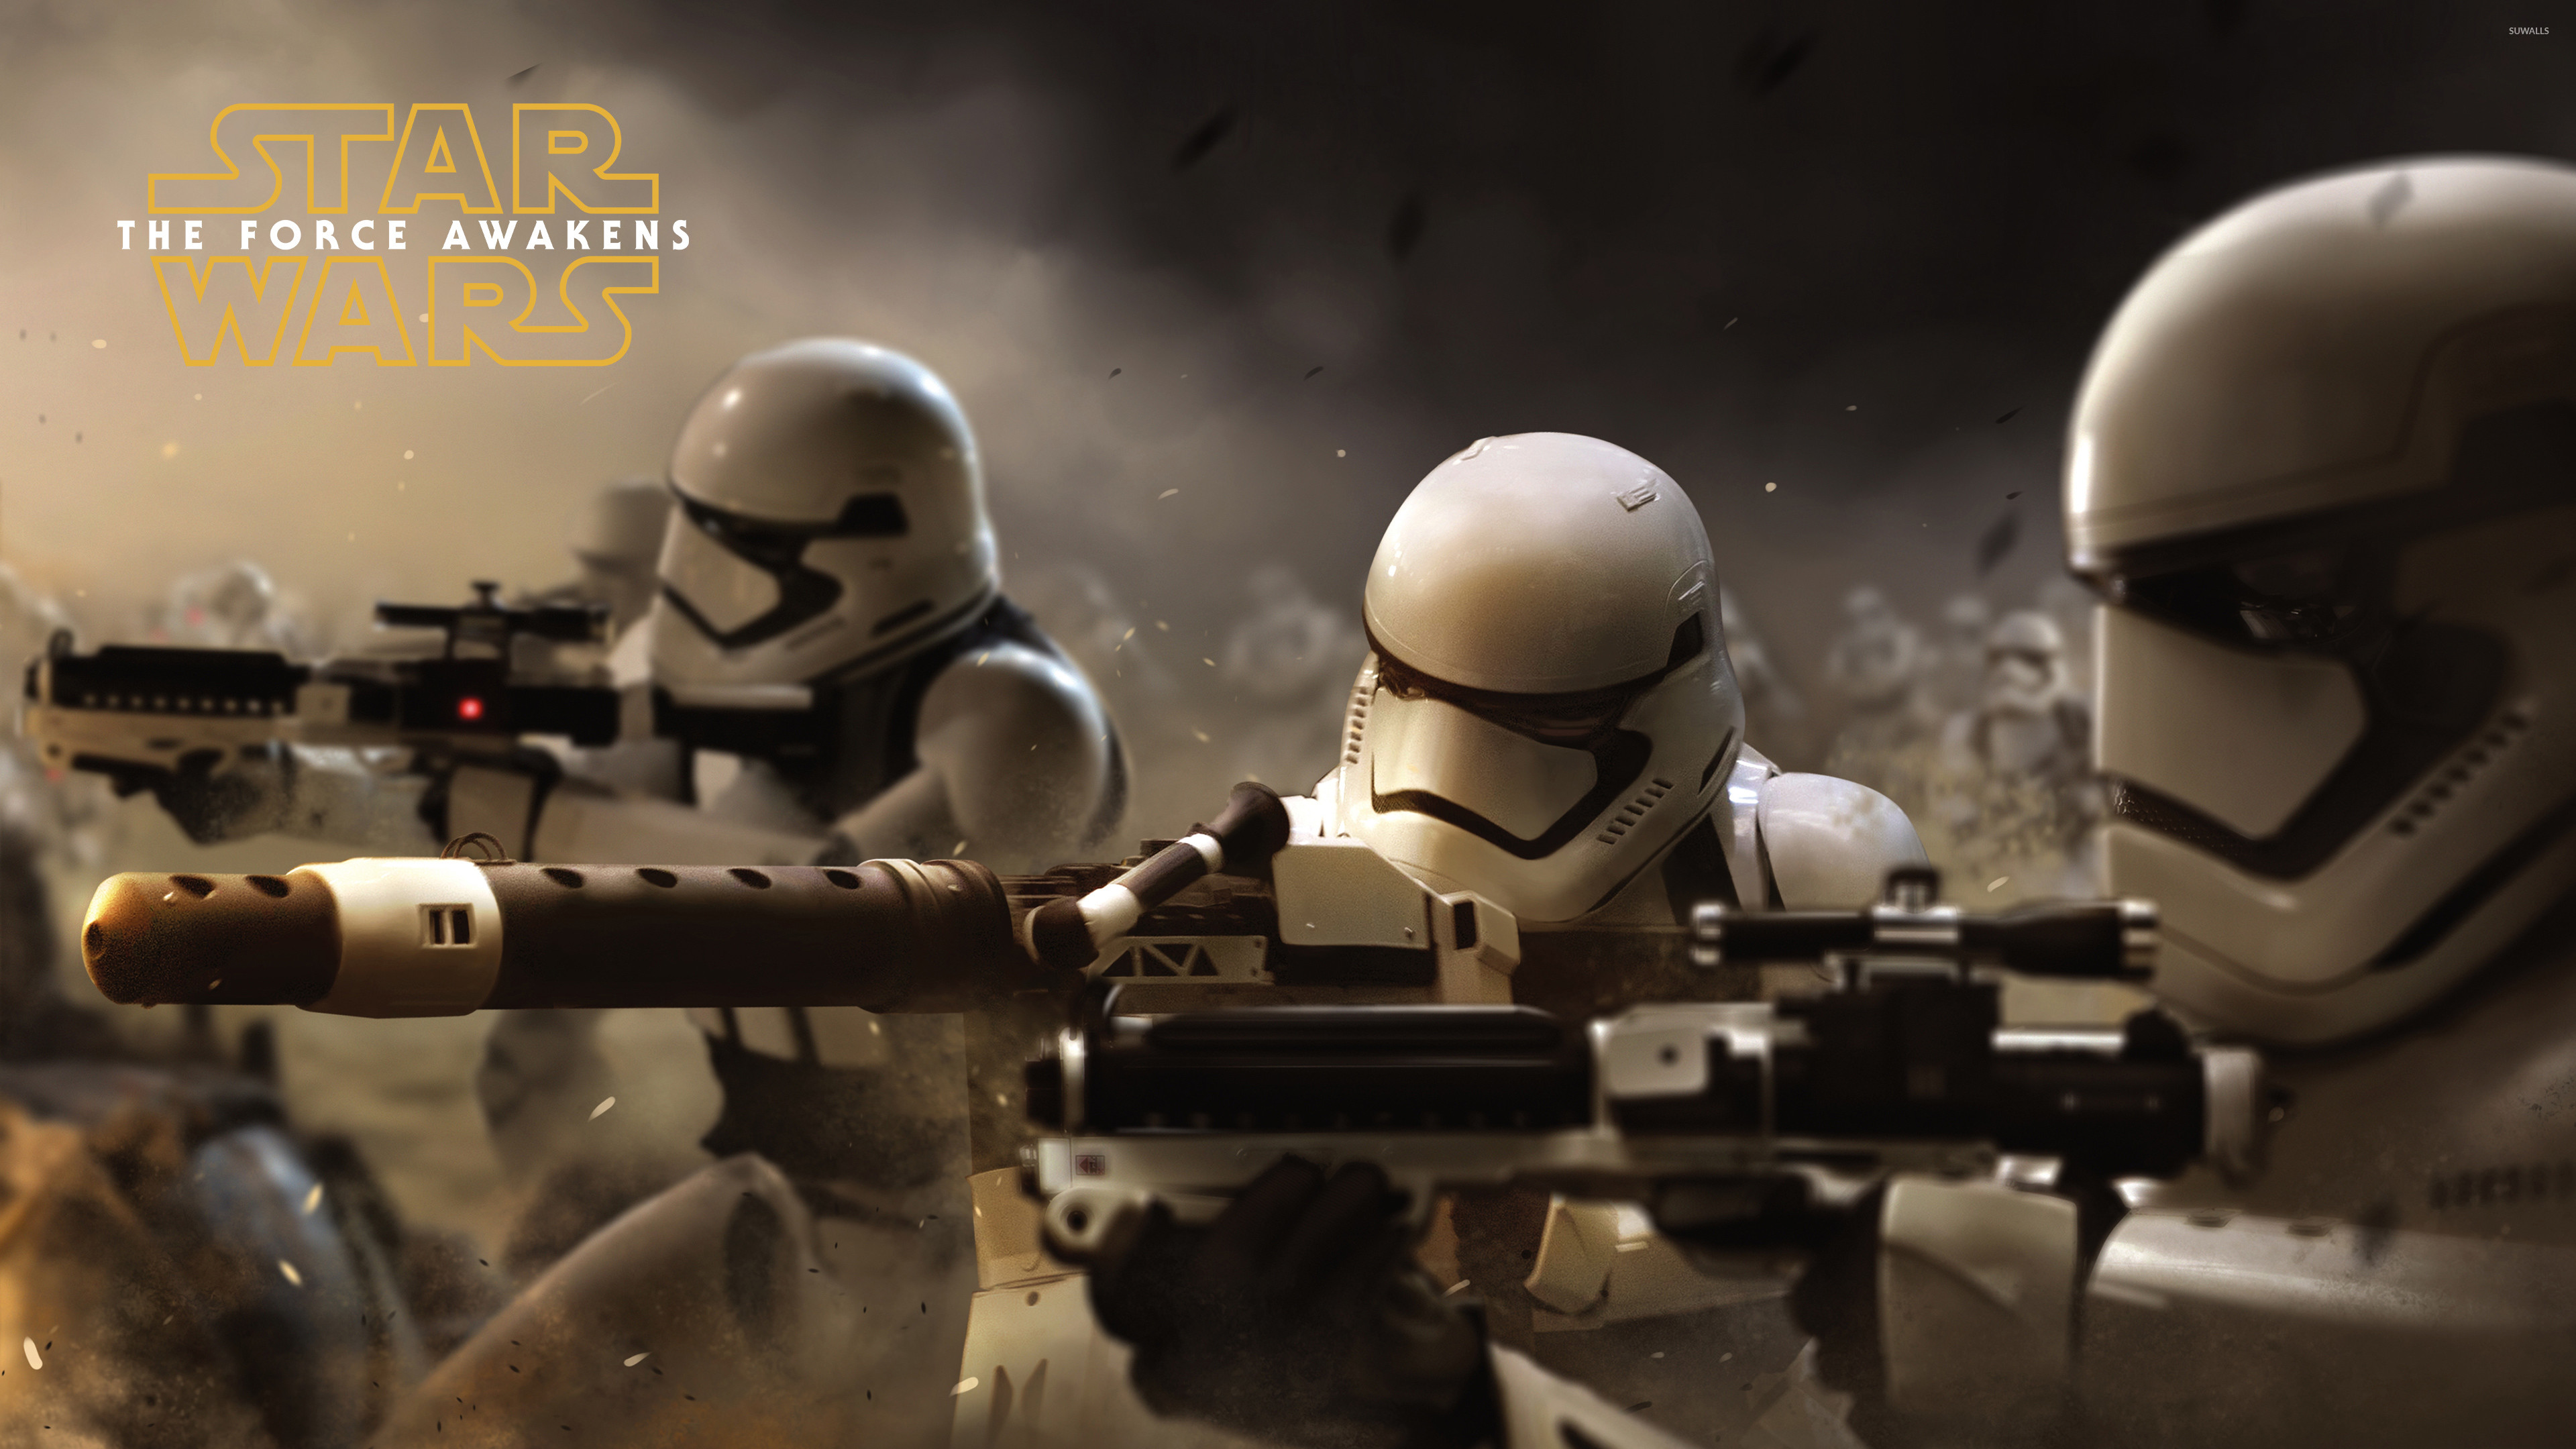 3840x2160 Stormtroopers in Star Wars: The Force Awakens wallpaper